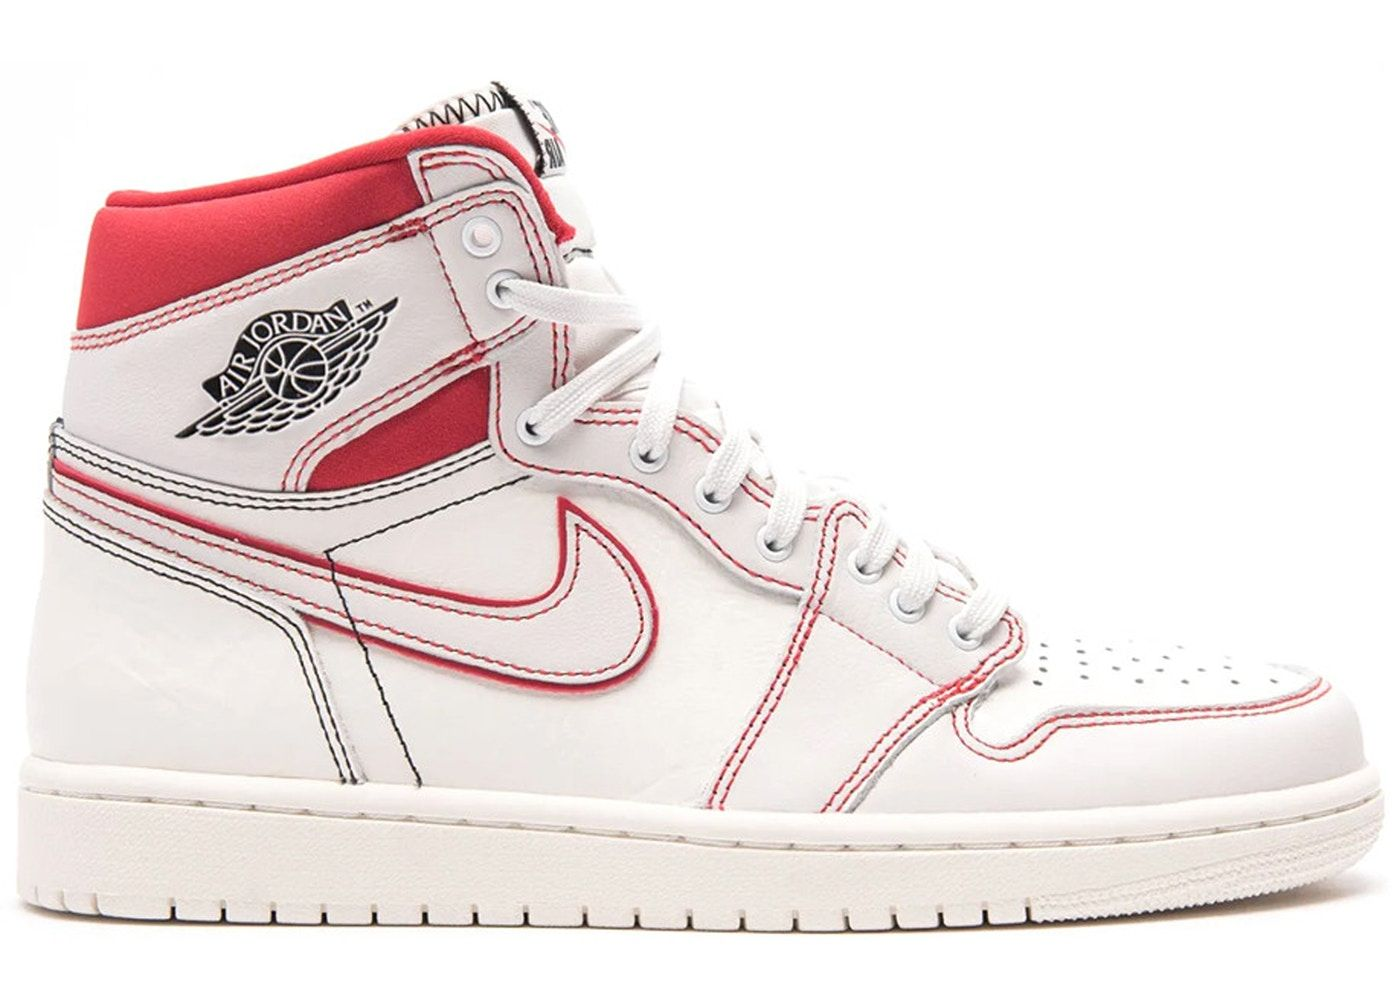 9bb0ff03 Check out the Jordan 1 Retro High Phantom Gym Red available on StockX